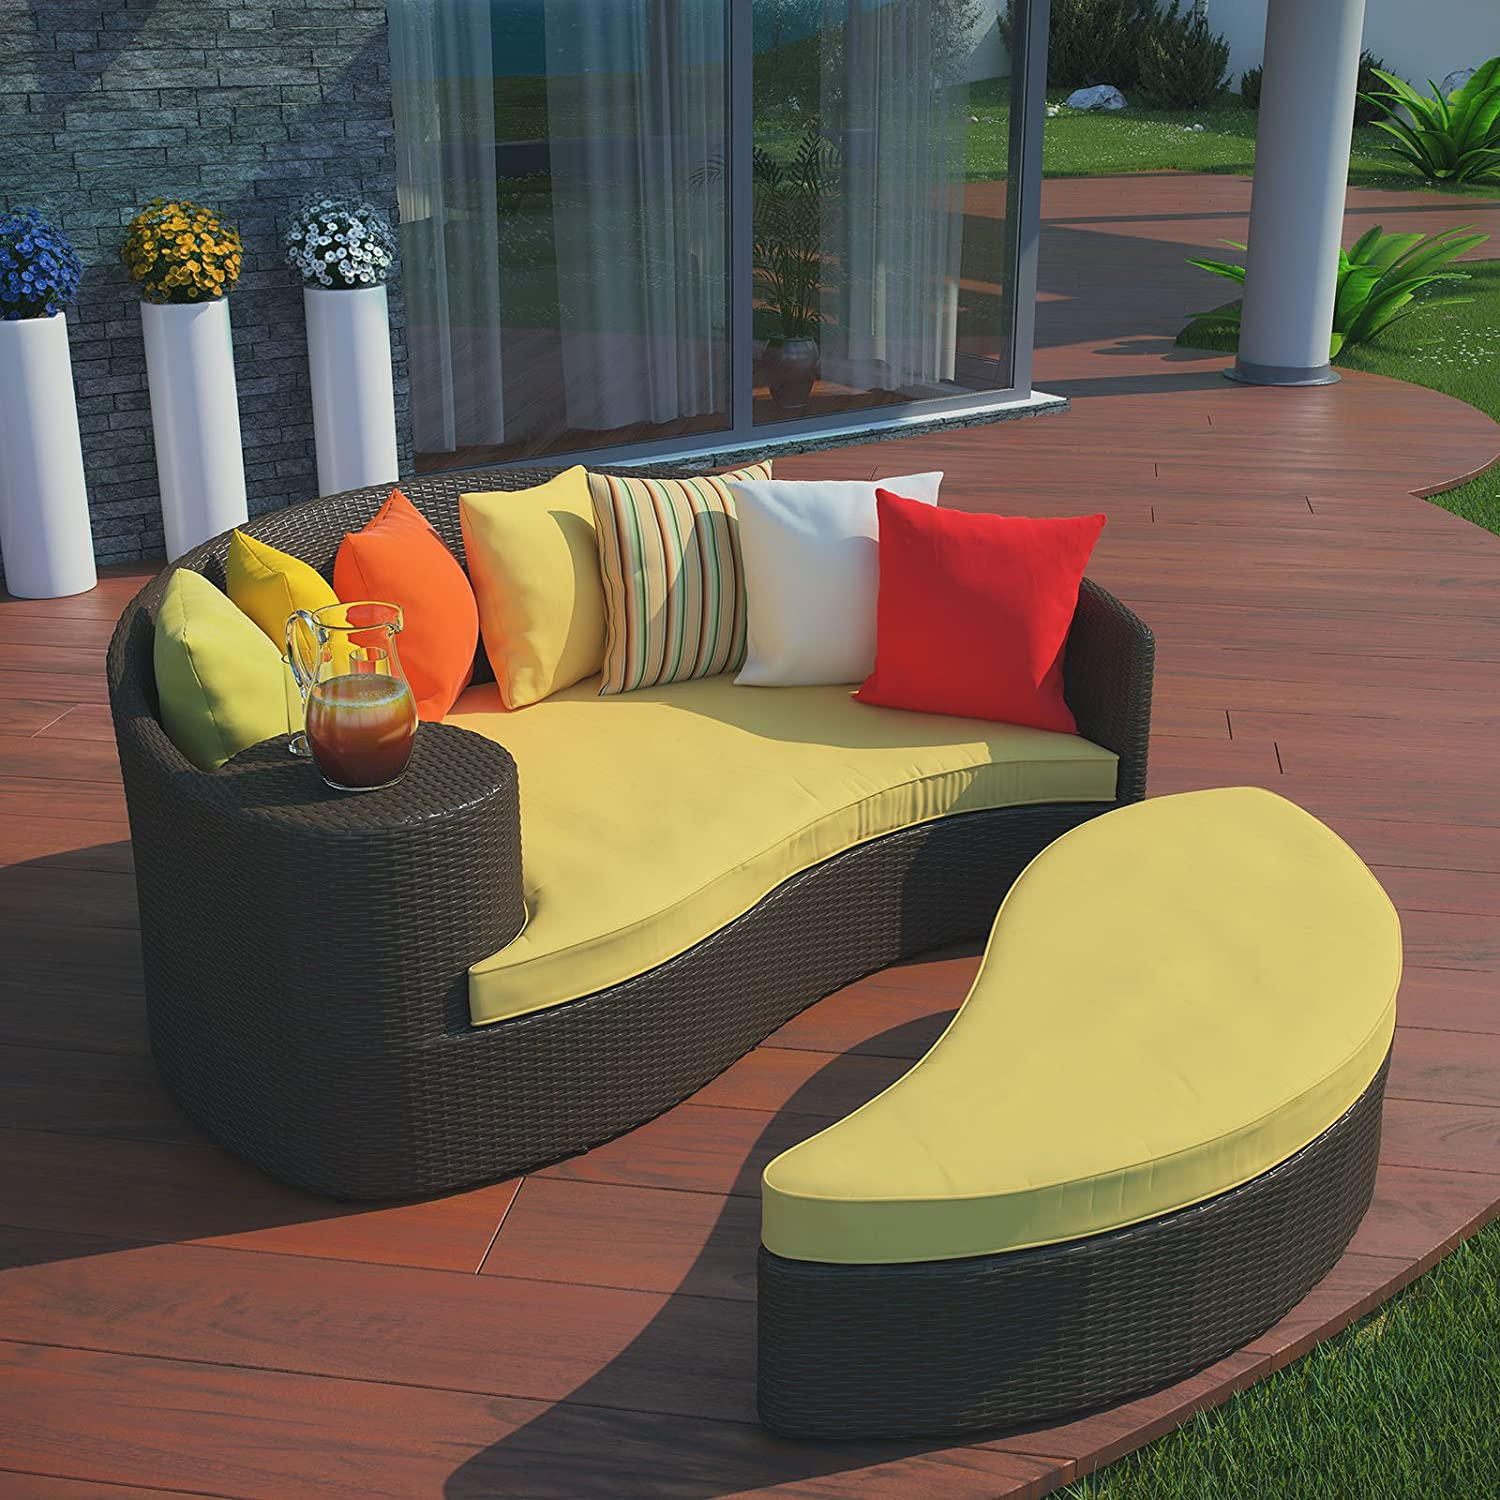 High Quality Amazon.com : Modway Taiji Outdoor Wicker Patio Daybed With Ottoman In Brown  With Orange Cushions : Patio Lounge Chairs : Garden U0026 Outdoor